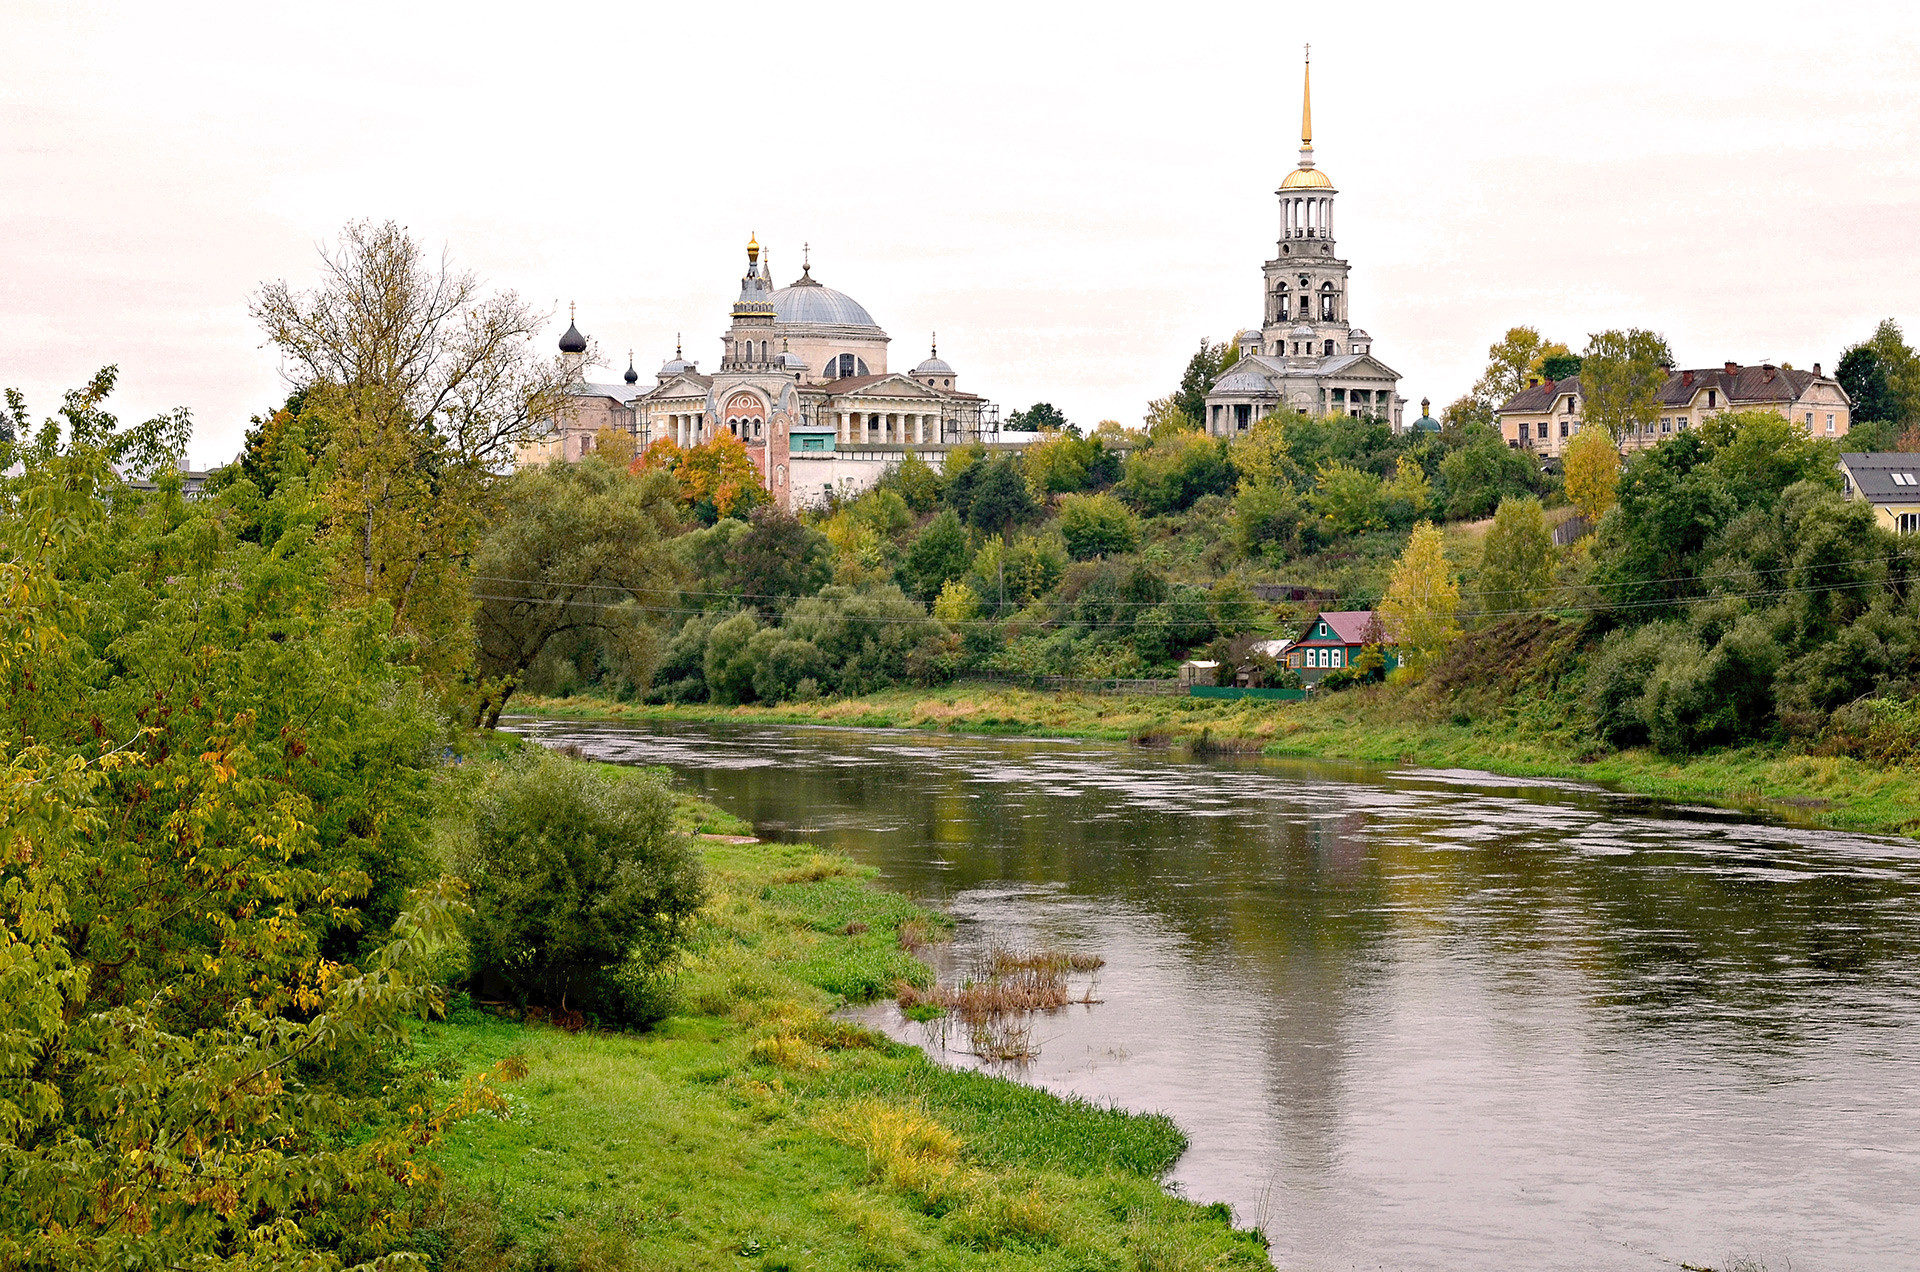 The Monastery of Sts. Boris and Gleb stands high above the river Tvertsa and Torzhok's small but pretty city center.